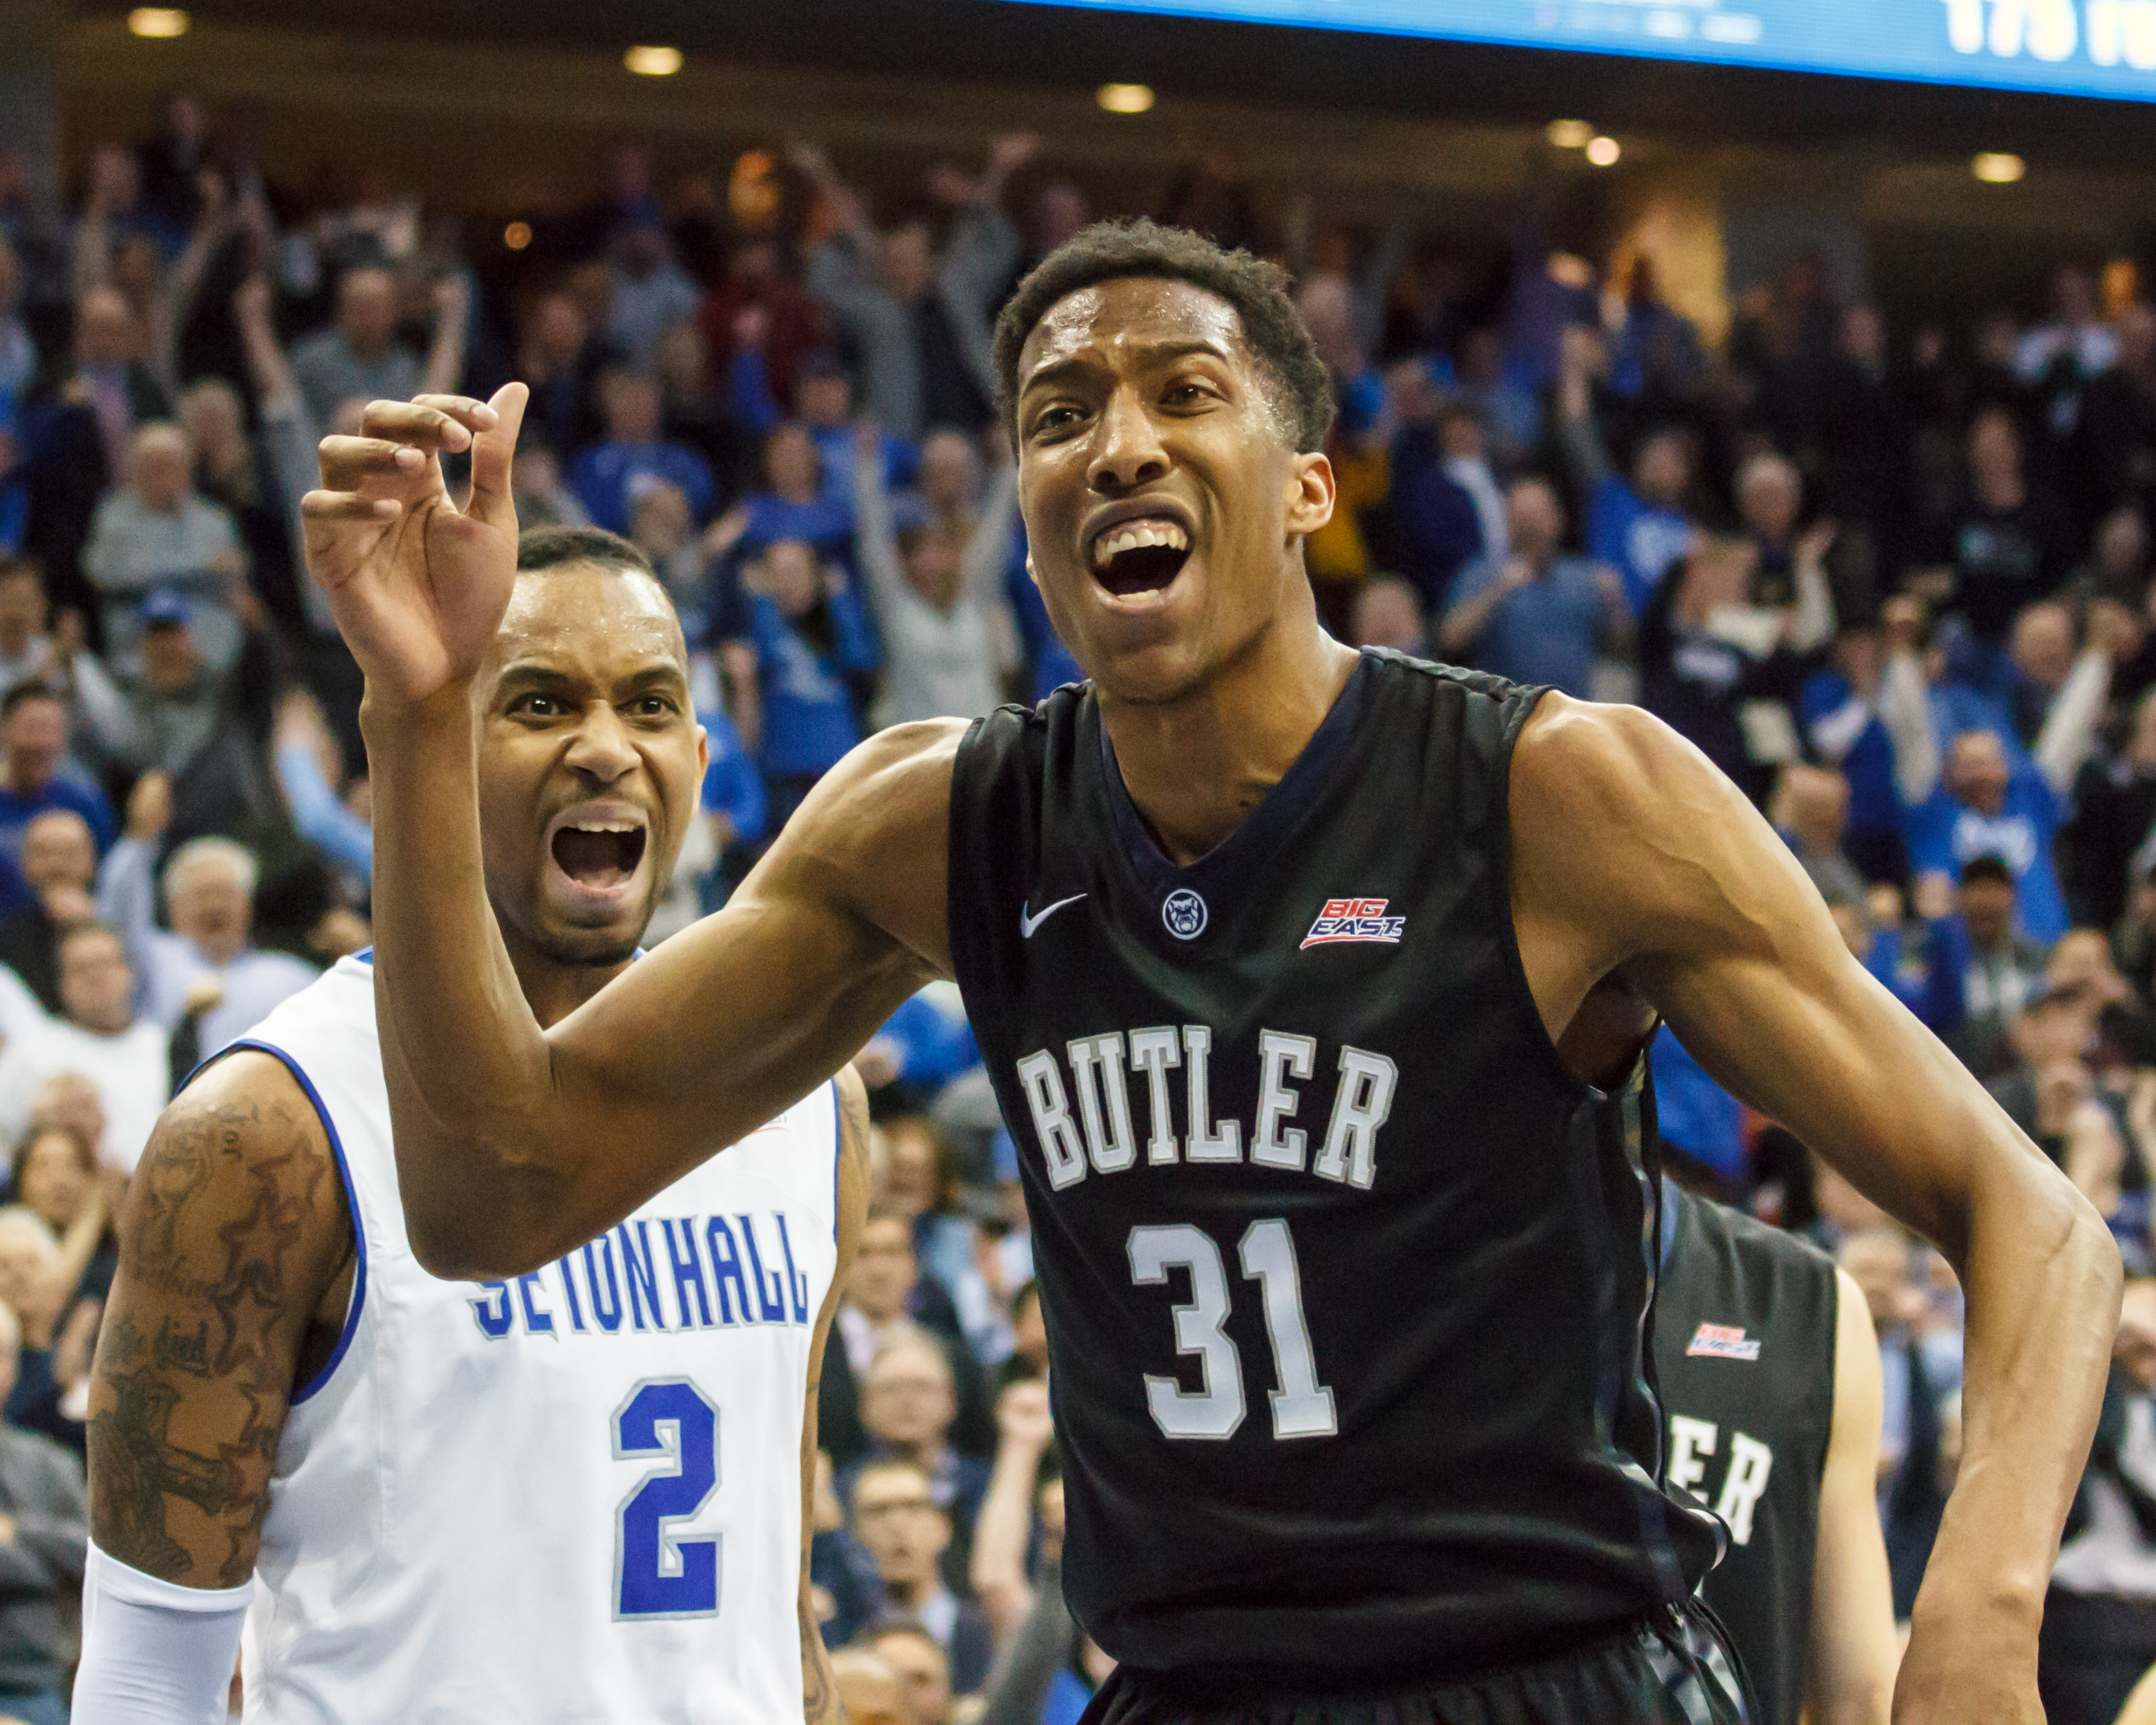 Brandon Mobley was held to six points on 1-15 shooting against Butler.